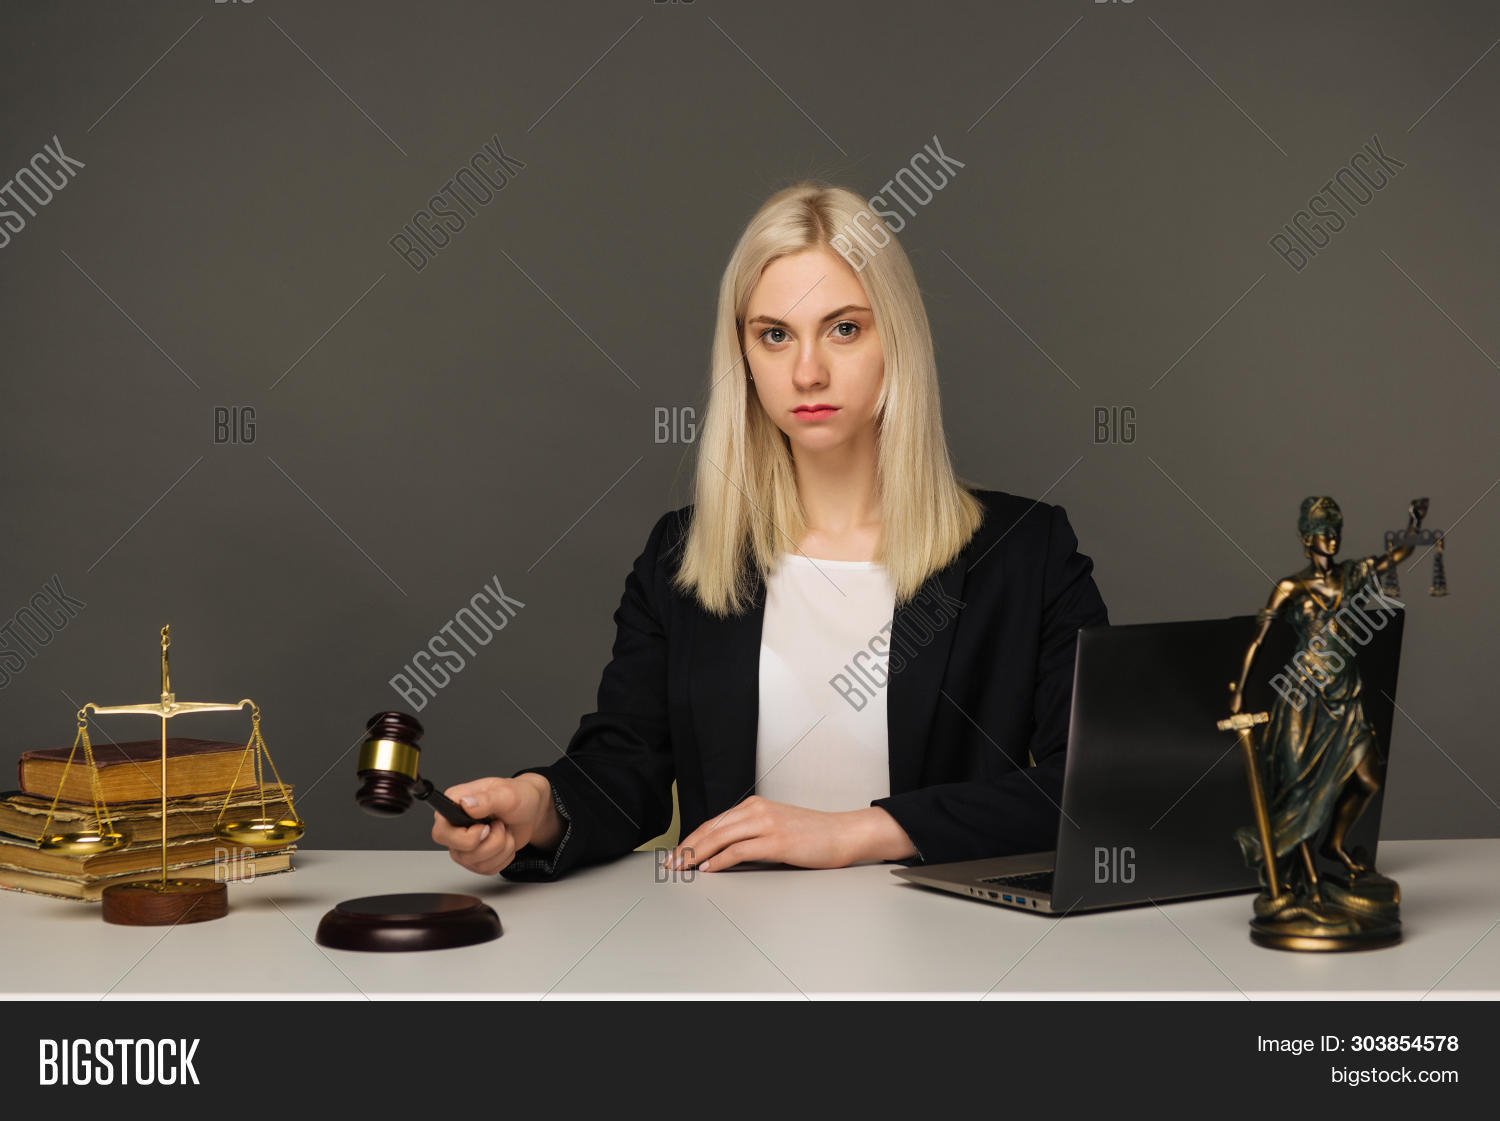 accountant,advocate,auction,block,clerk,court,courtroom,crime,criminal,decision,female,gavel,glasses,guilty,hammer,holding,judge,judgement,justice,law,lawsuit,lawyer,legal,litigation,magistrate,notary,office,person,robes,rules,sounding,stand,trial,wig,woman